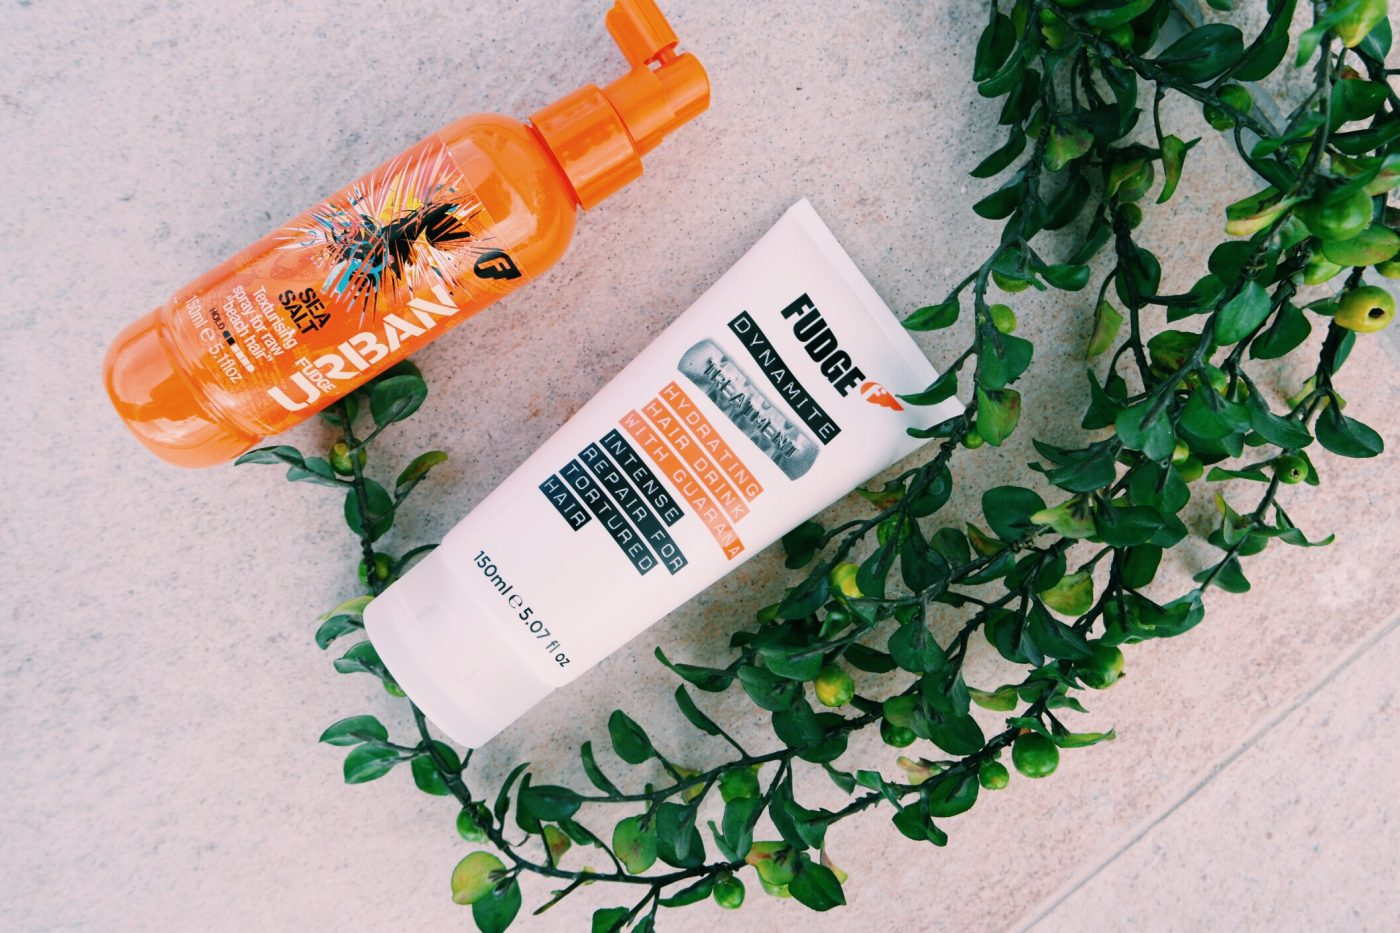 (L-R) FUDGE Urban Intense Repair for Totured Hair ($18.95), Fudge Urban Sea Salt ($9.95). Image: Ghadeer El-Khub